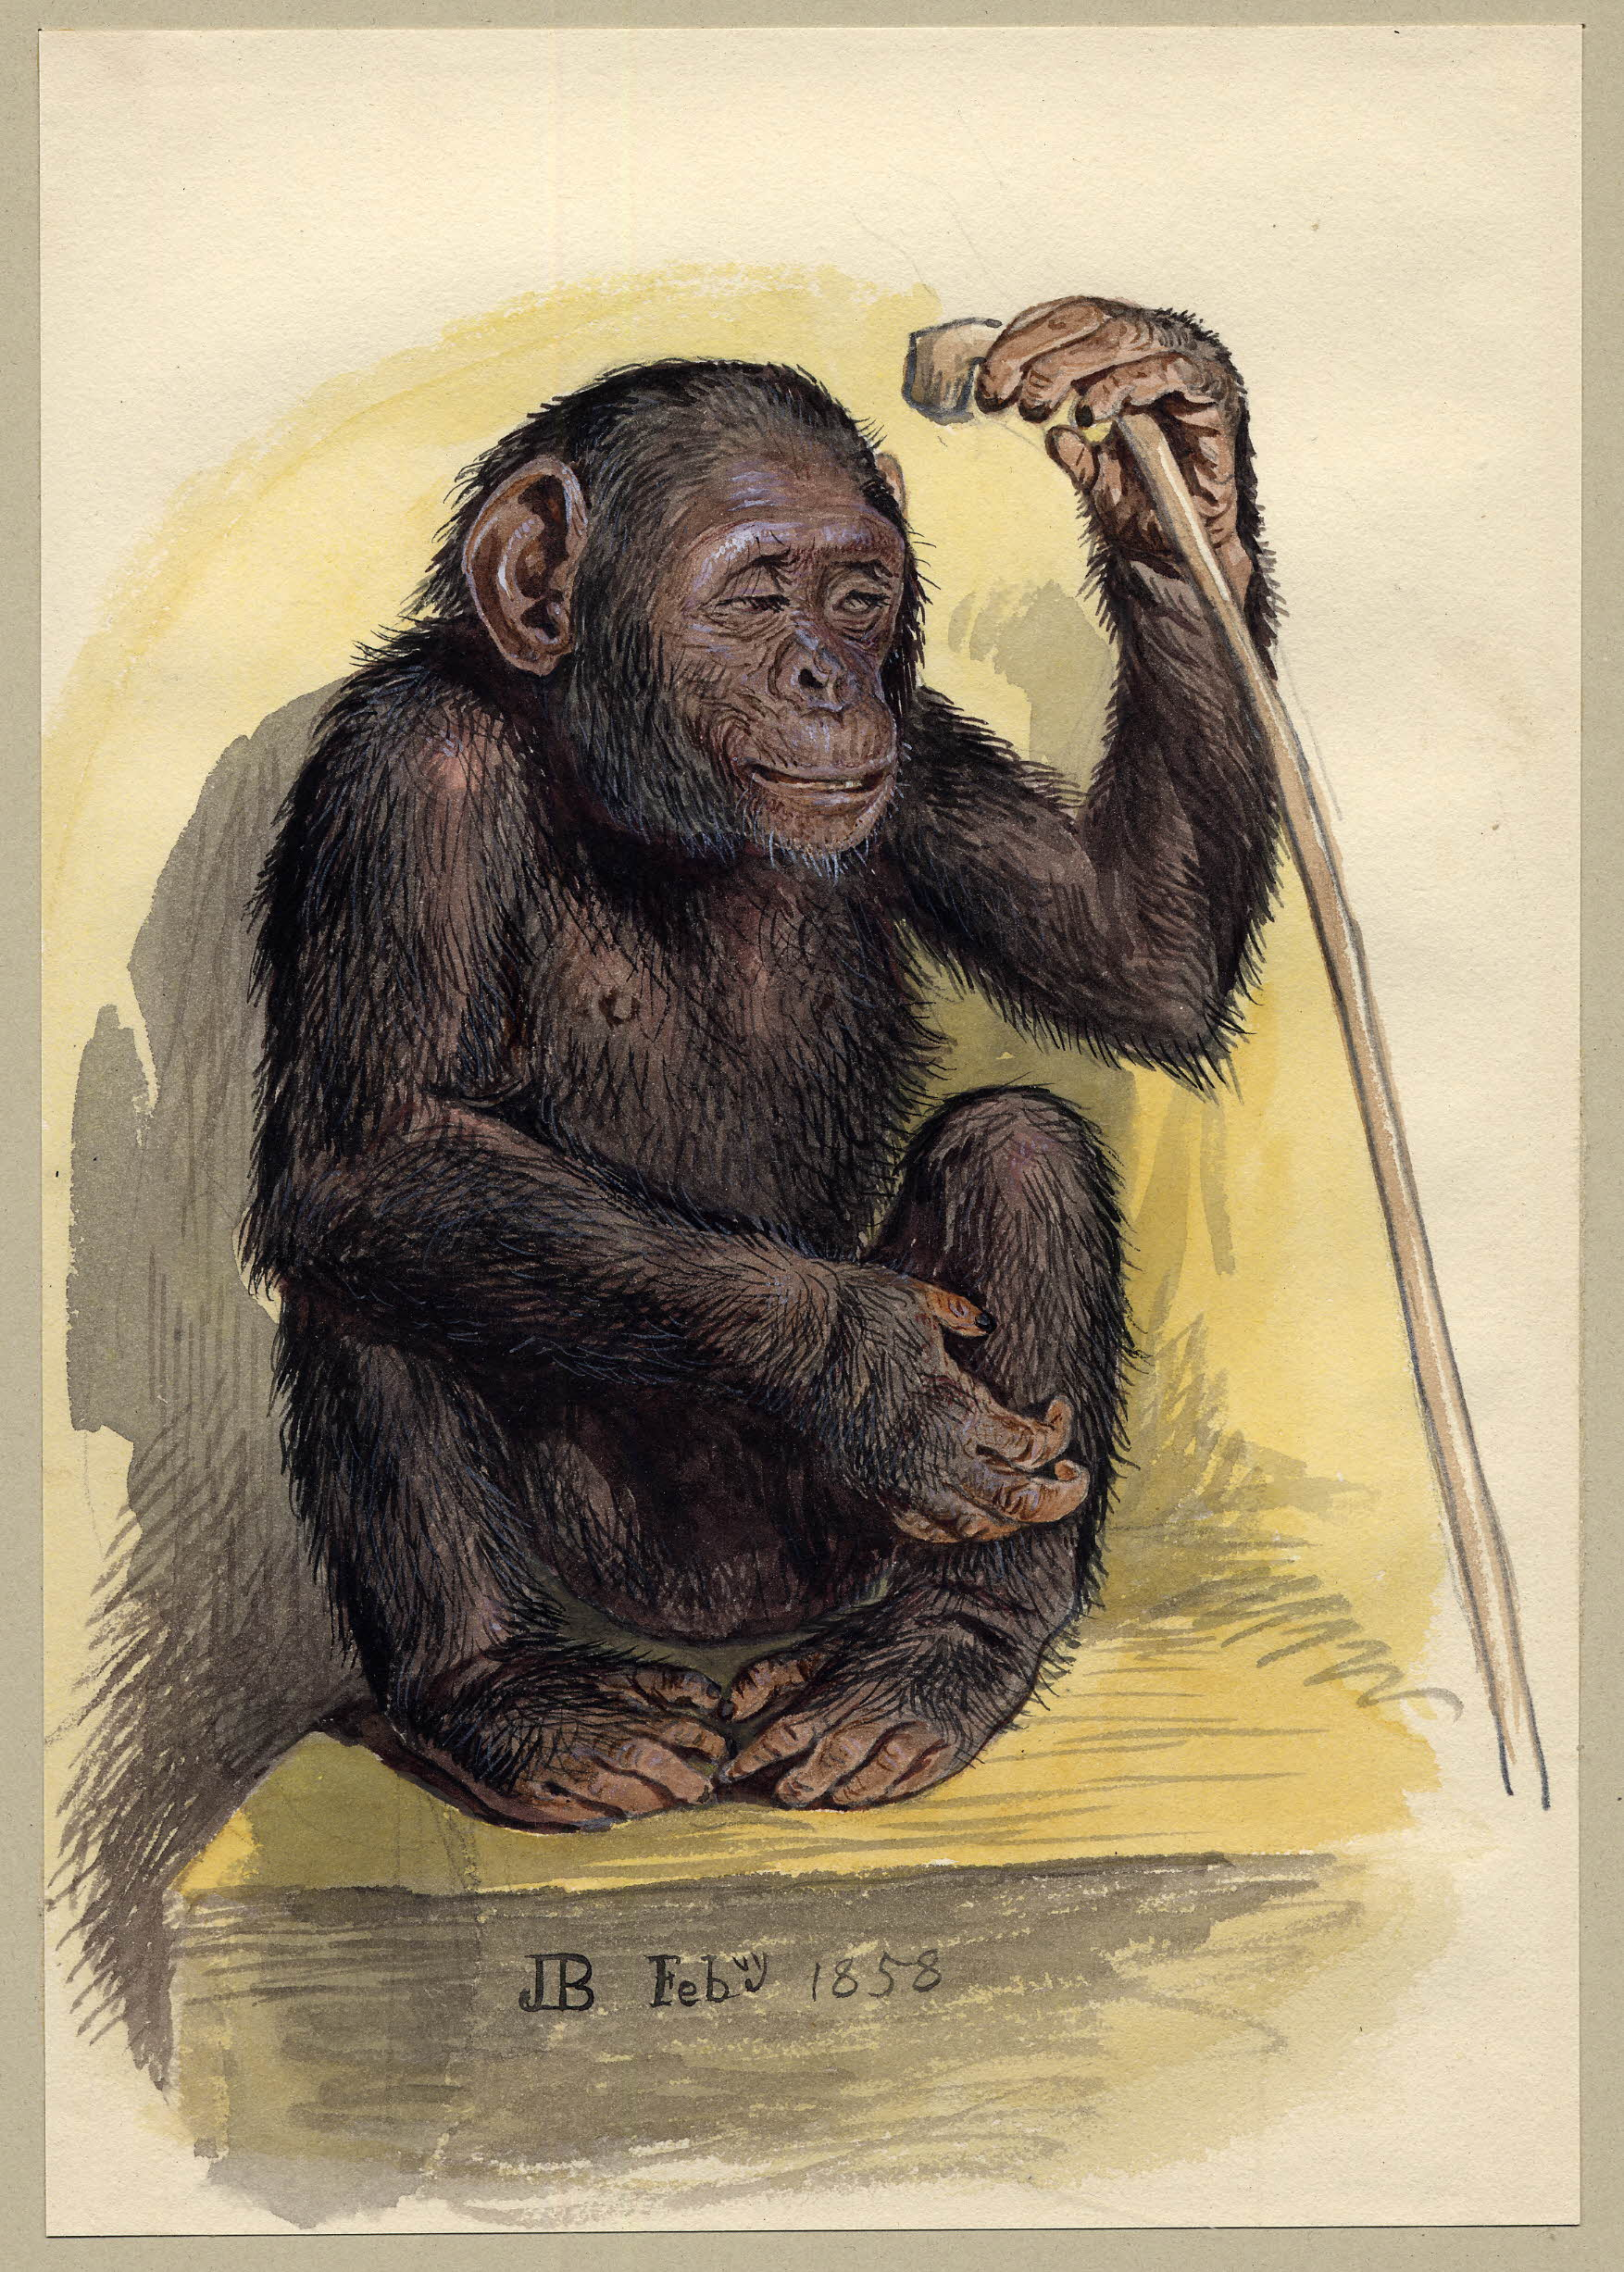 Watercolour painting of a chimpanzee.